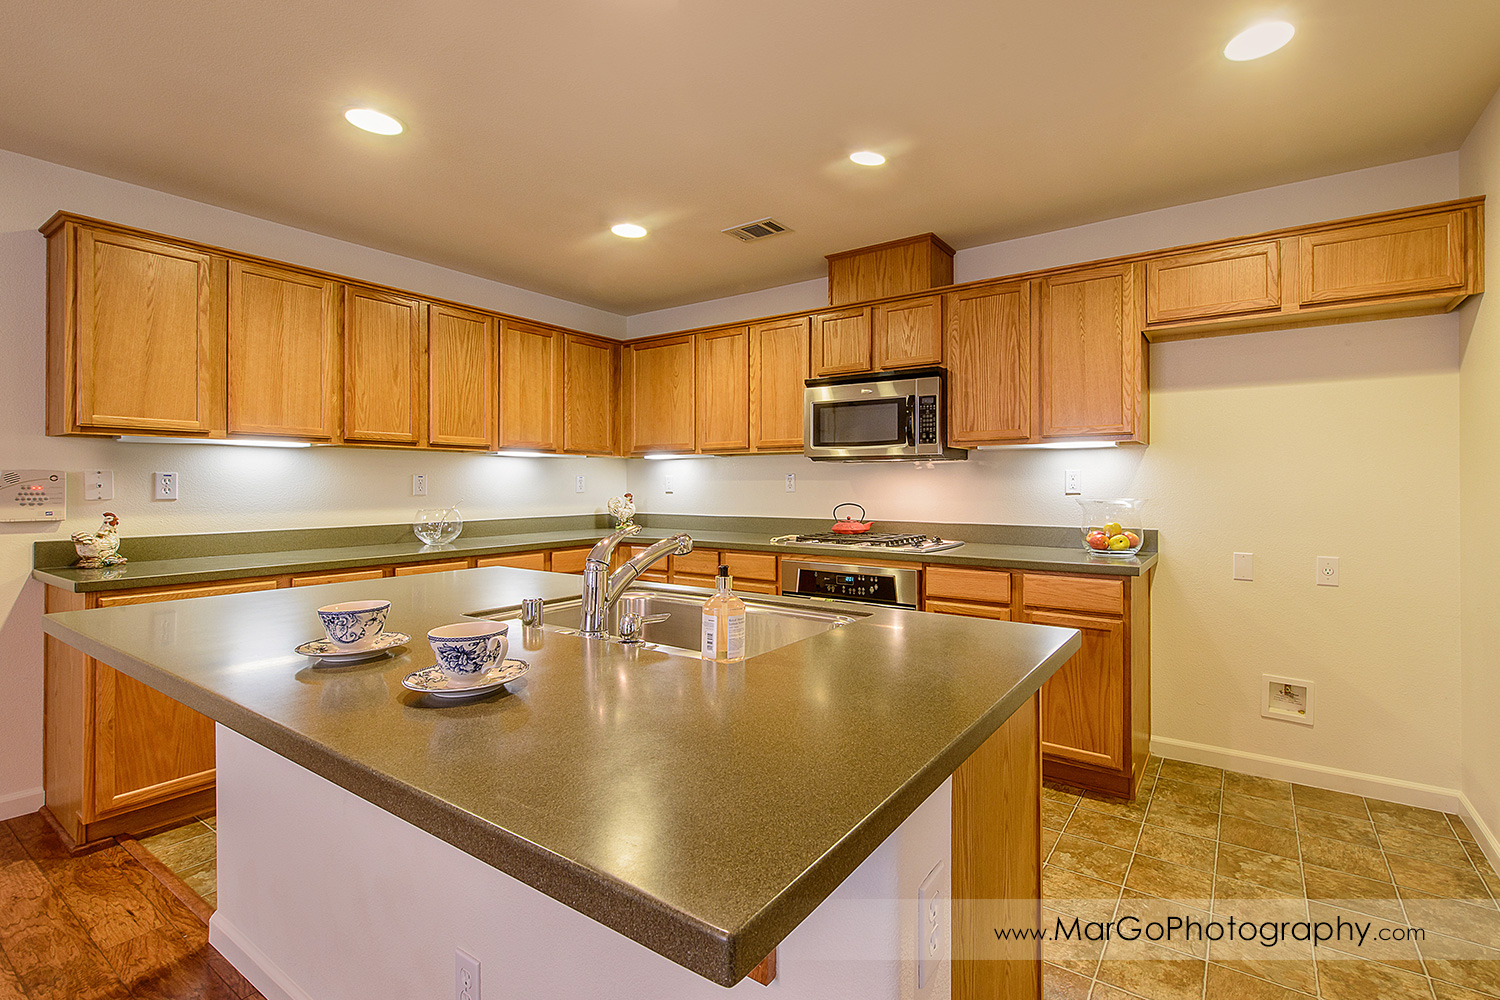 Pittsburd house kitchen with small island - real estate photography